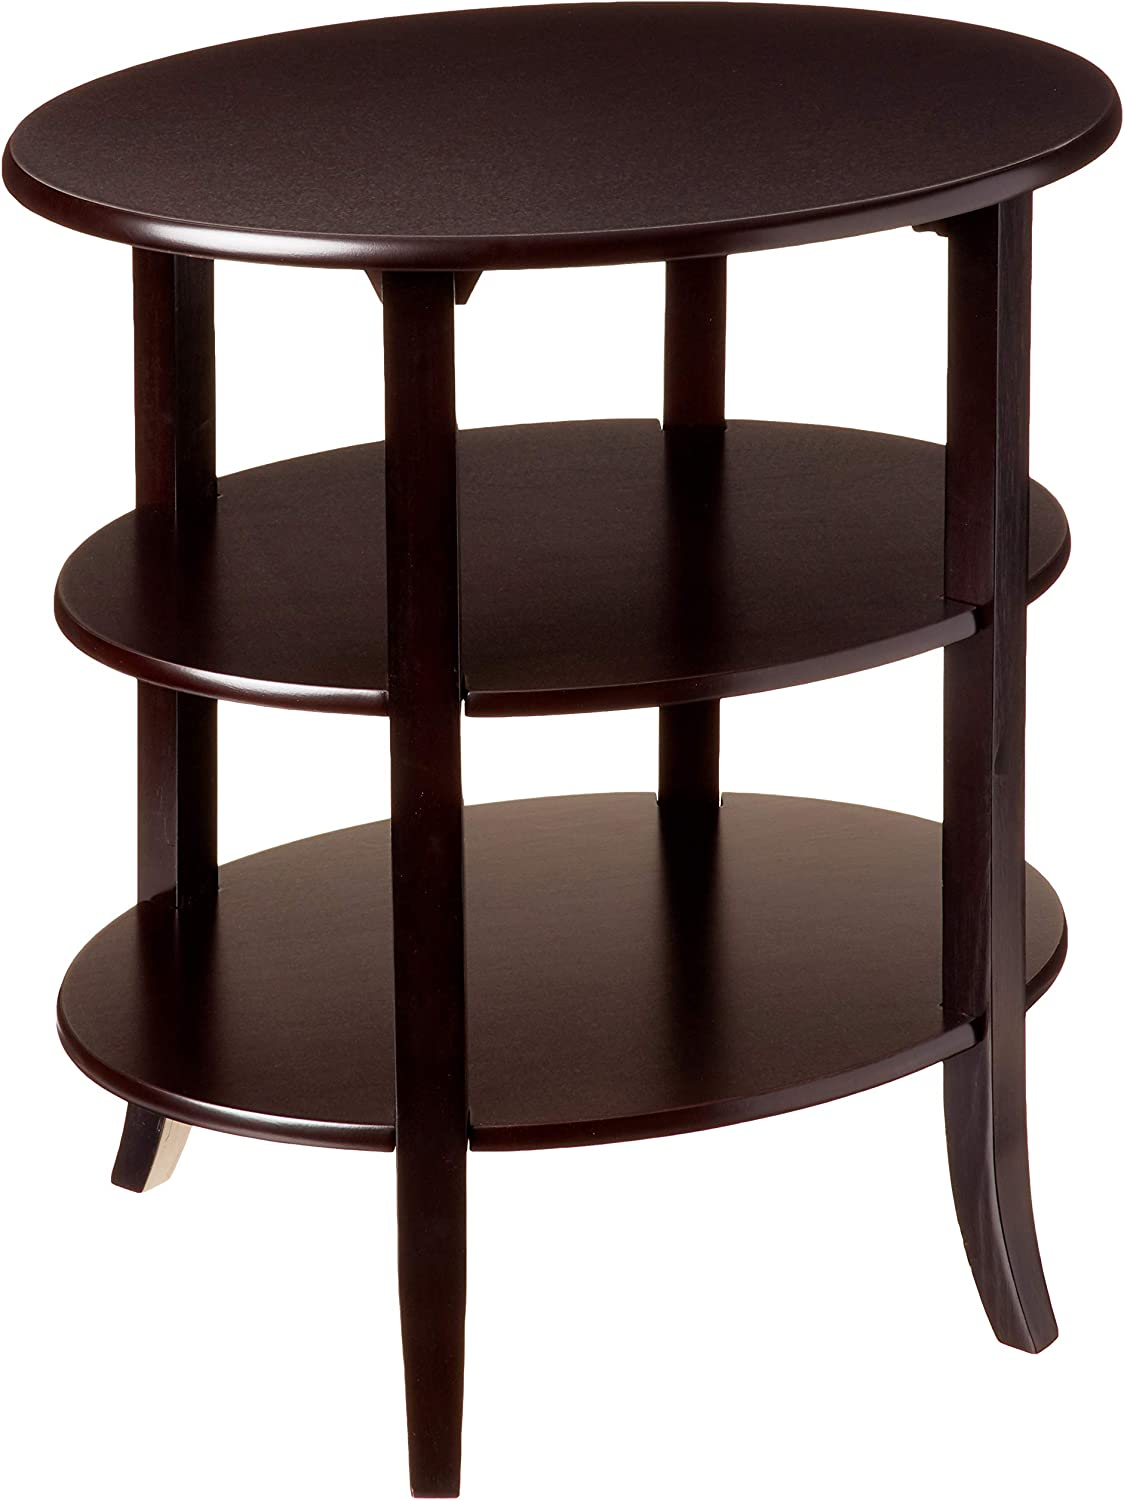 Frenchi Furniture 3-Tier Oval End Table